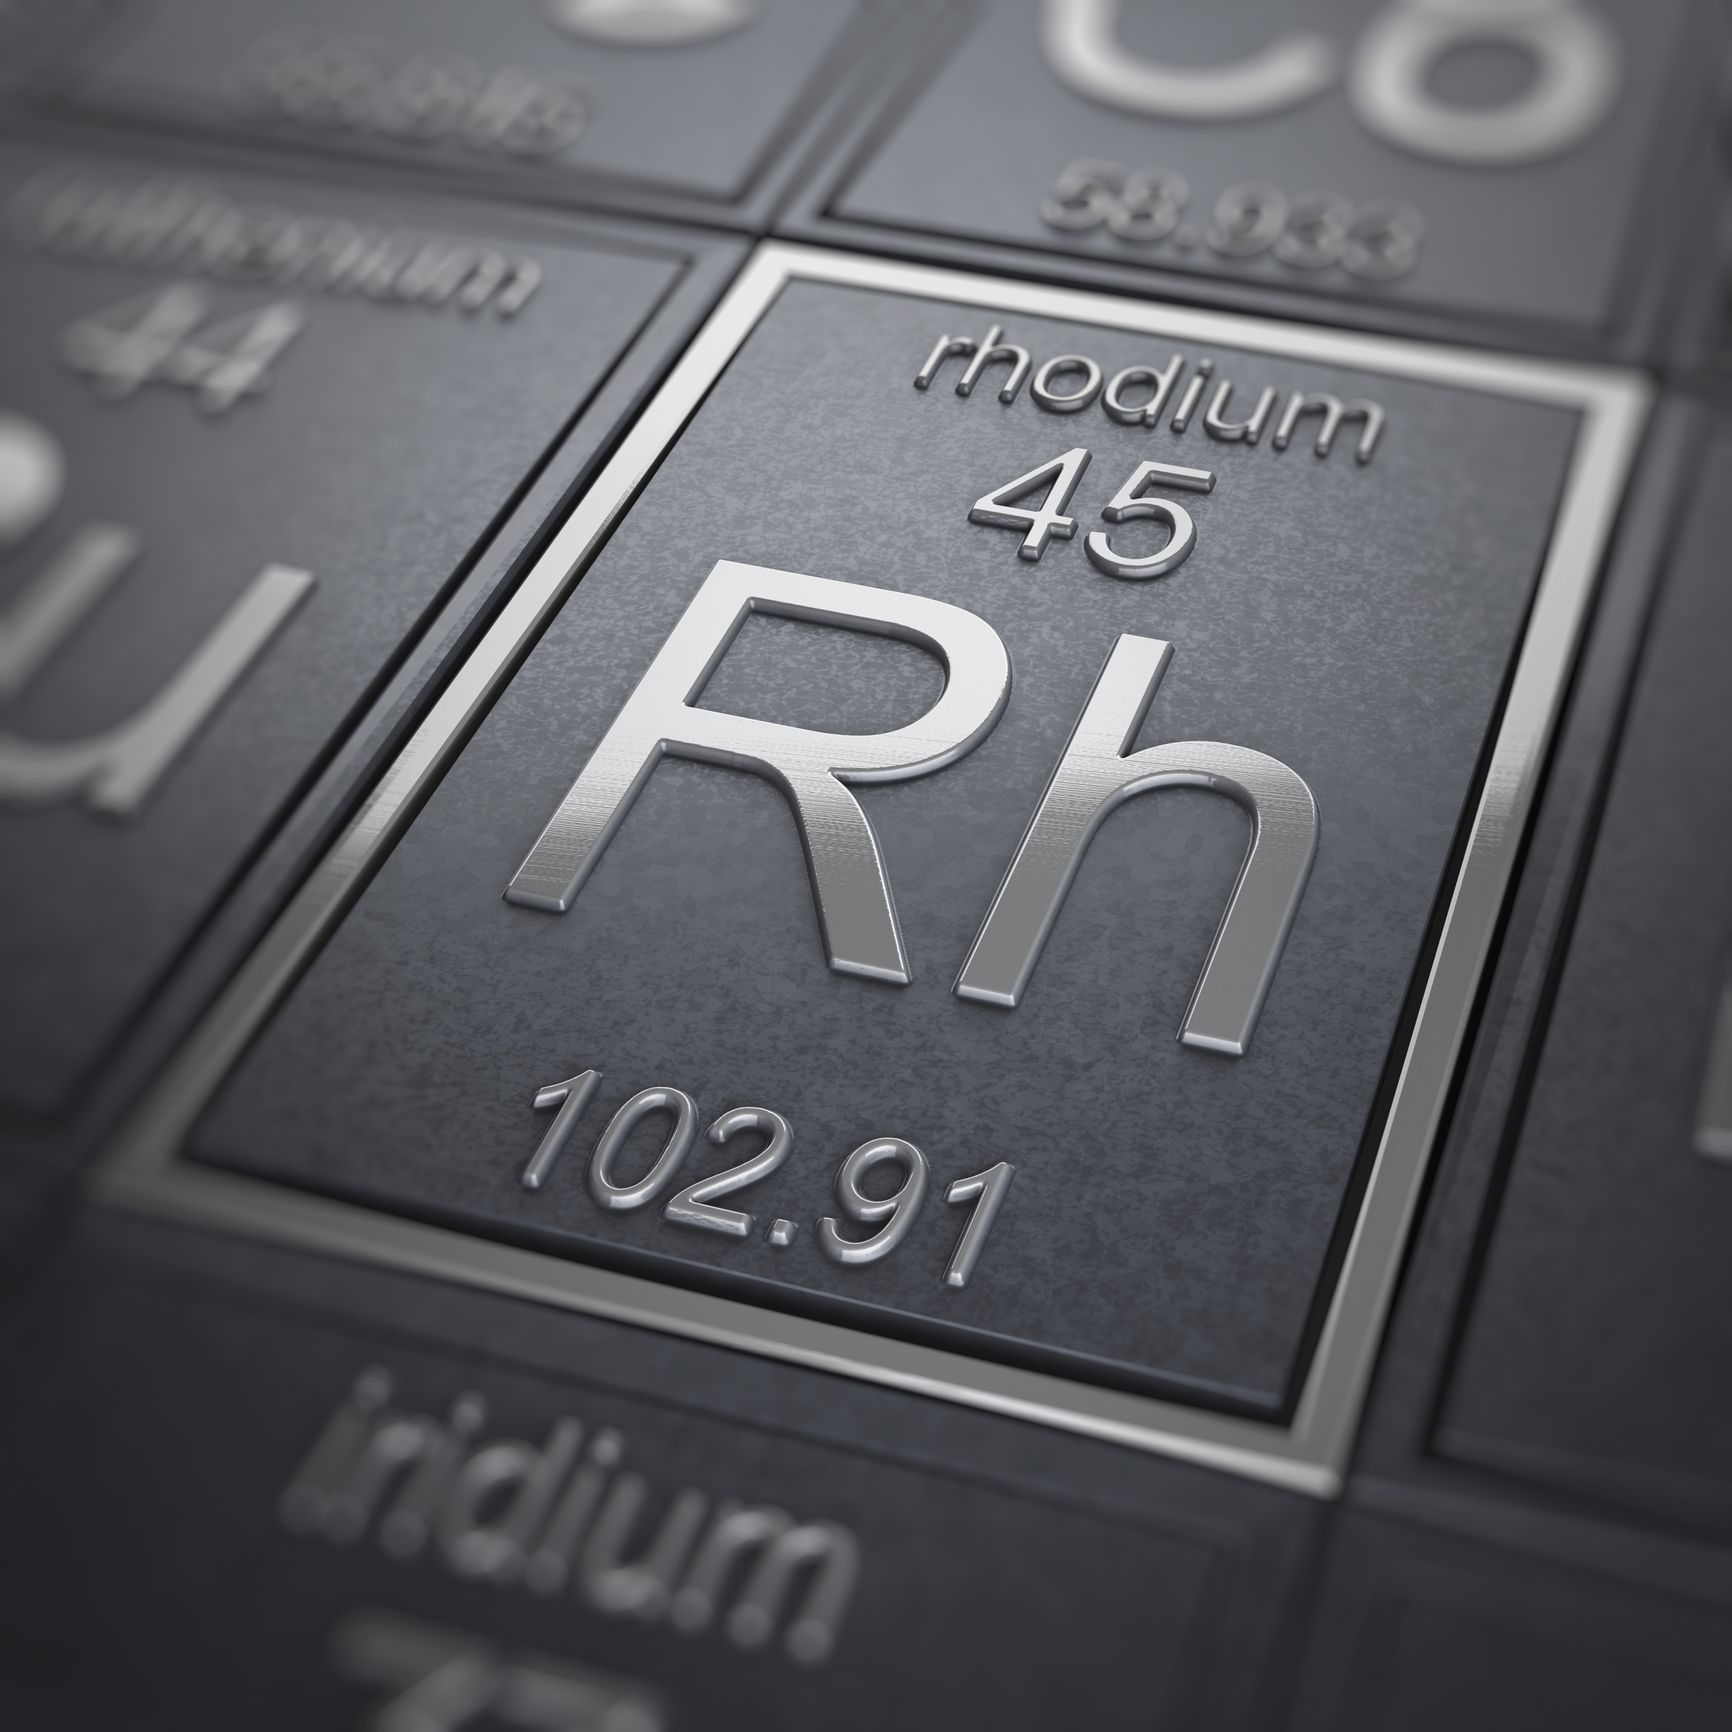 Indium facts periodic table of the elements get facts about the element rhodium gamestrikefo Gallery